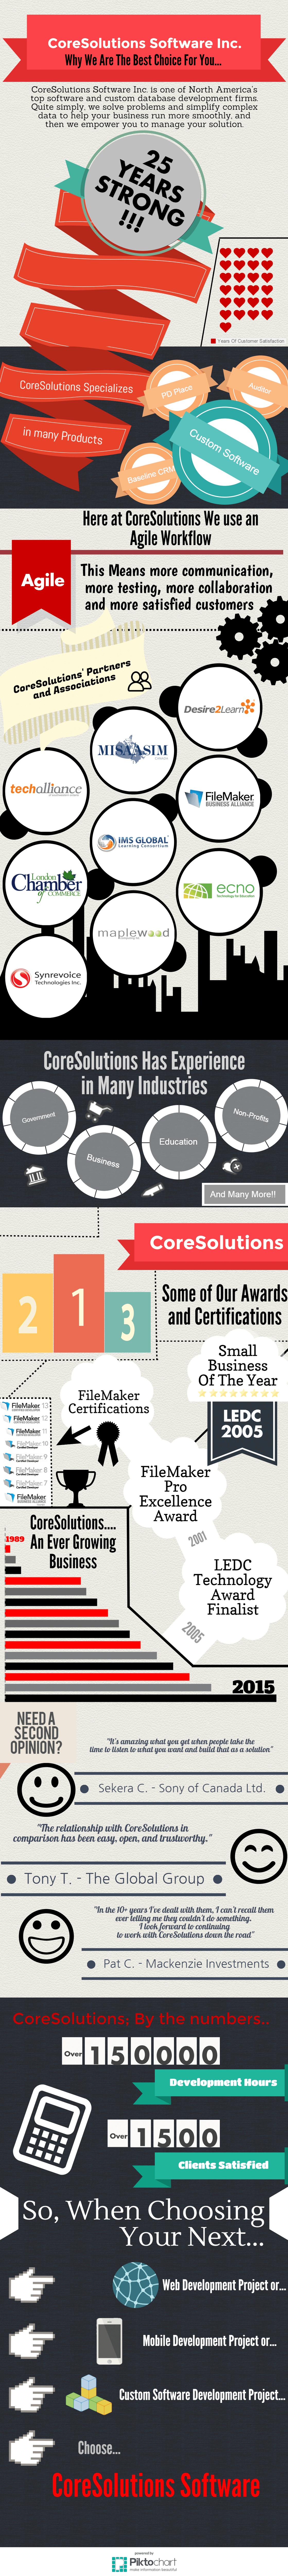 Why CoreSolutions? Infographic